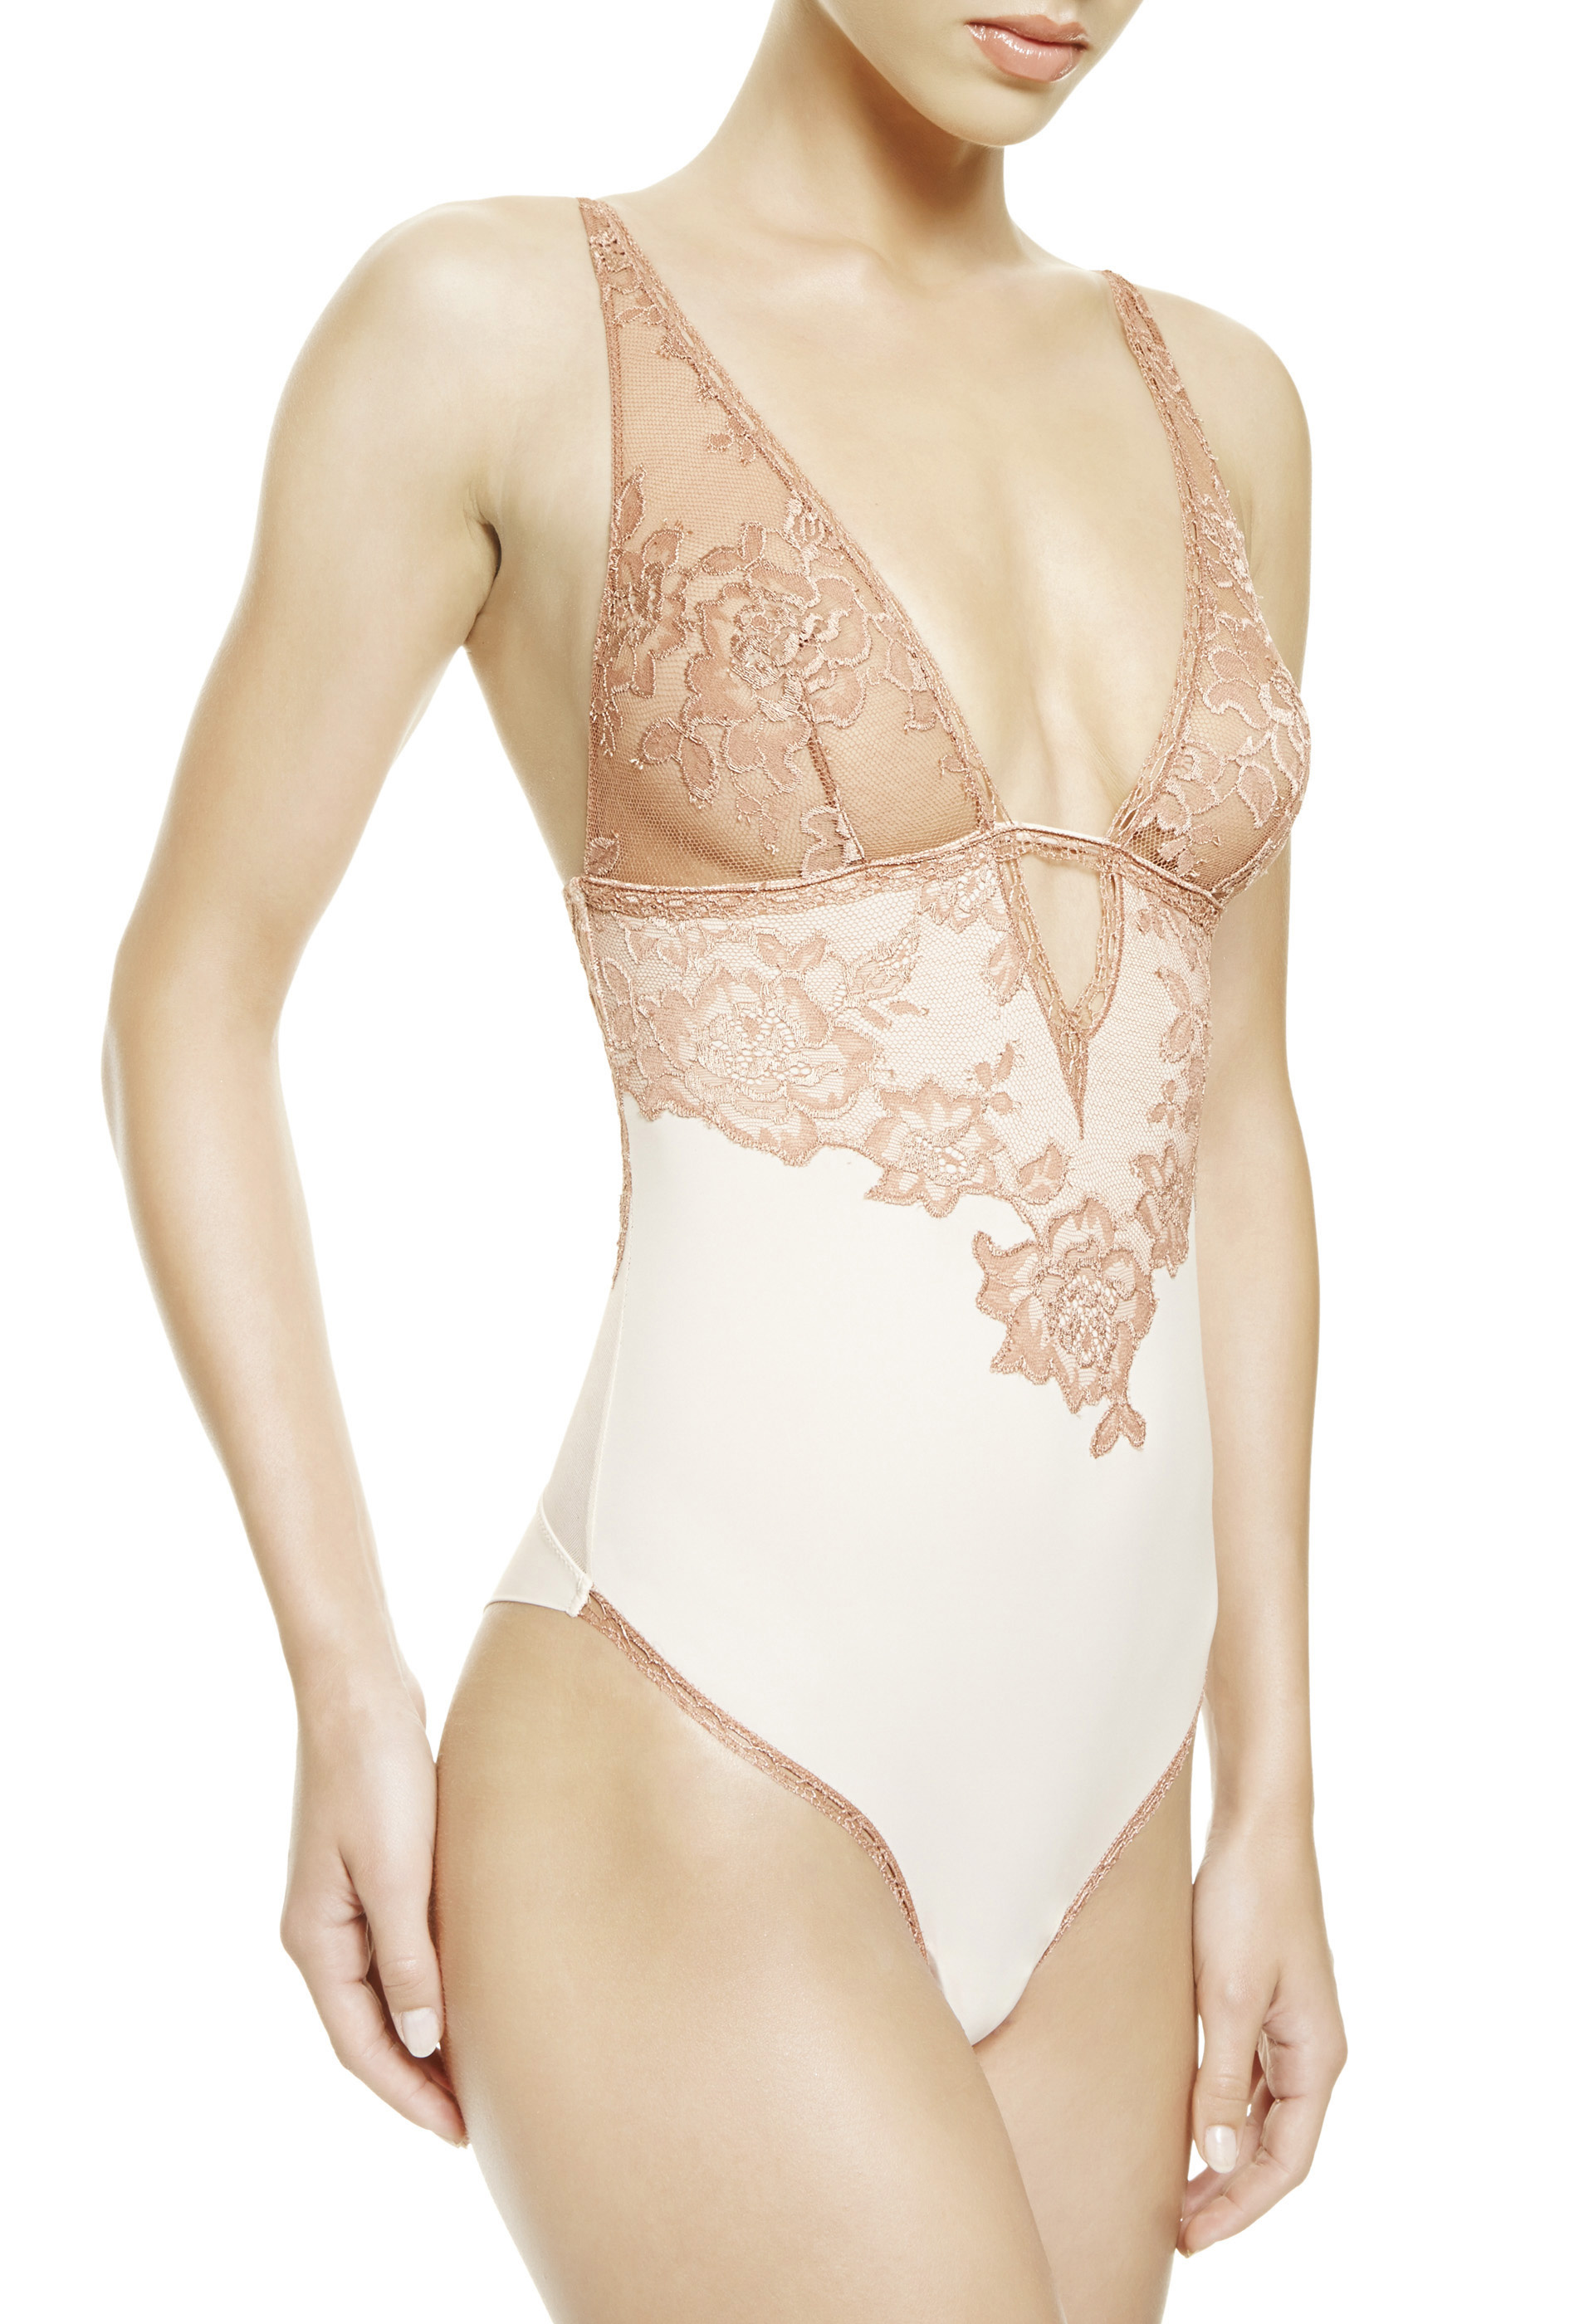 laperla bodysuits 14-10